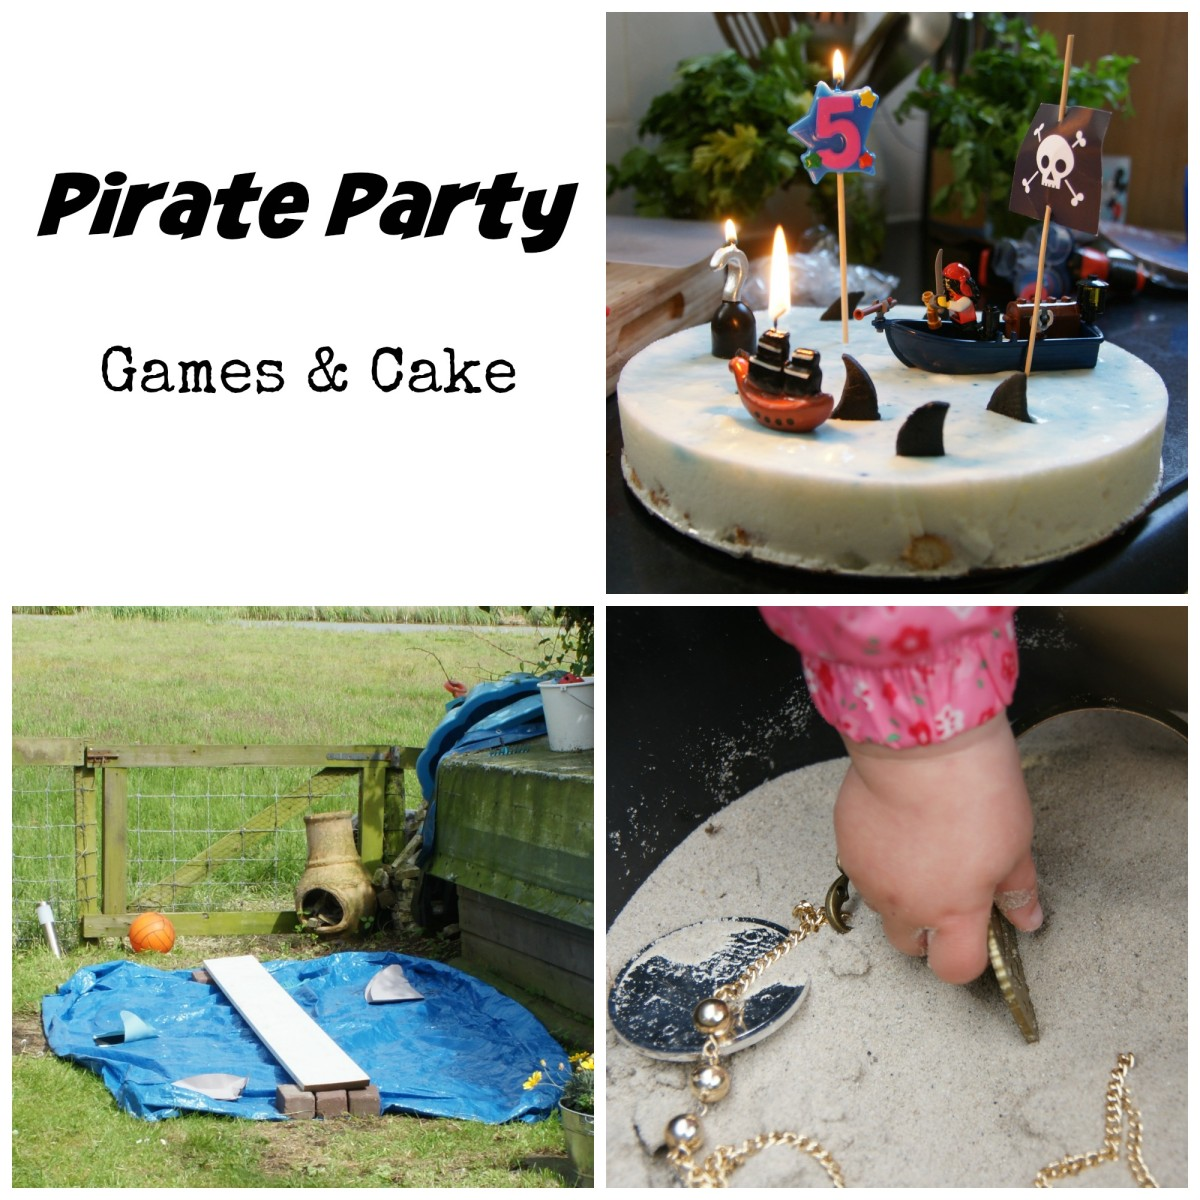 Pirate_Party